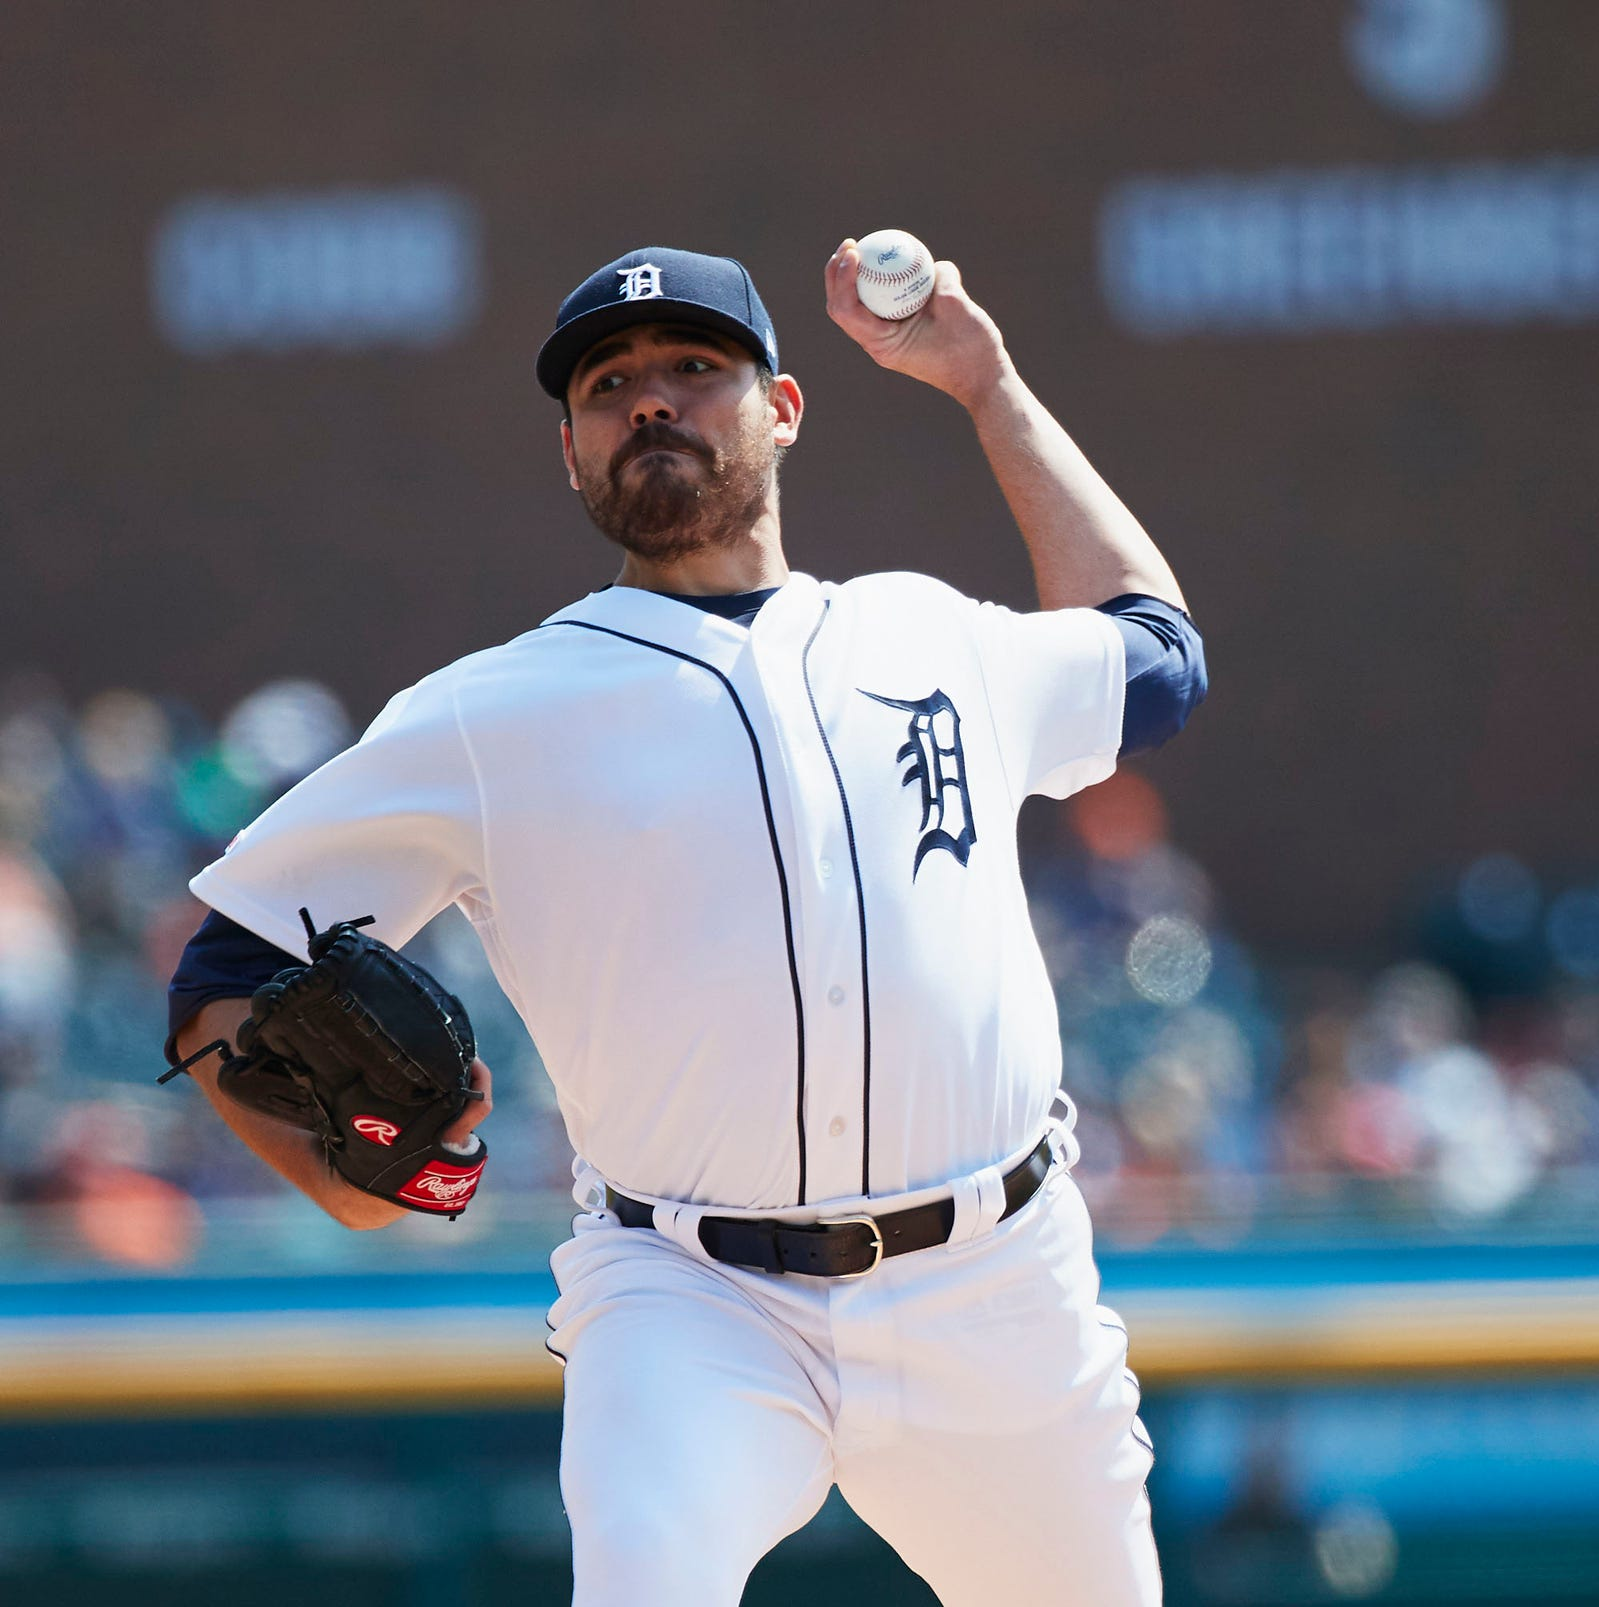 Detroit Tigers: Matt Moore's 2019 season is done after right knee surgery